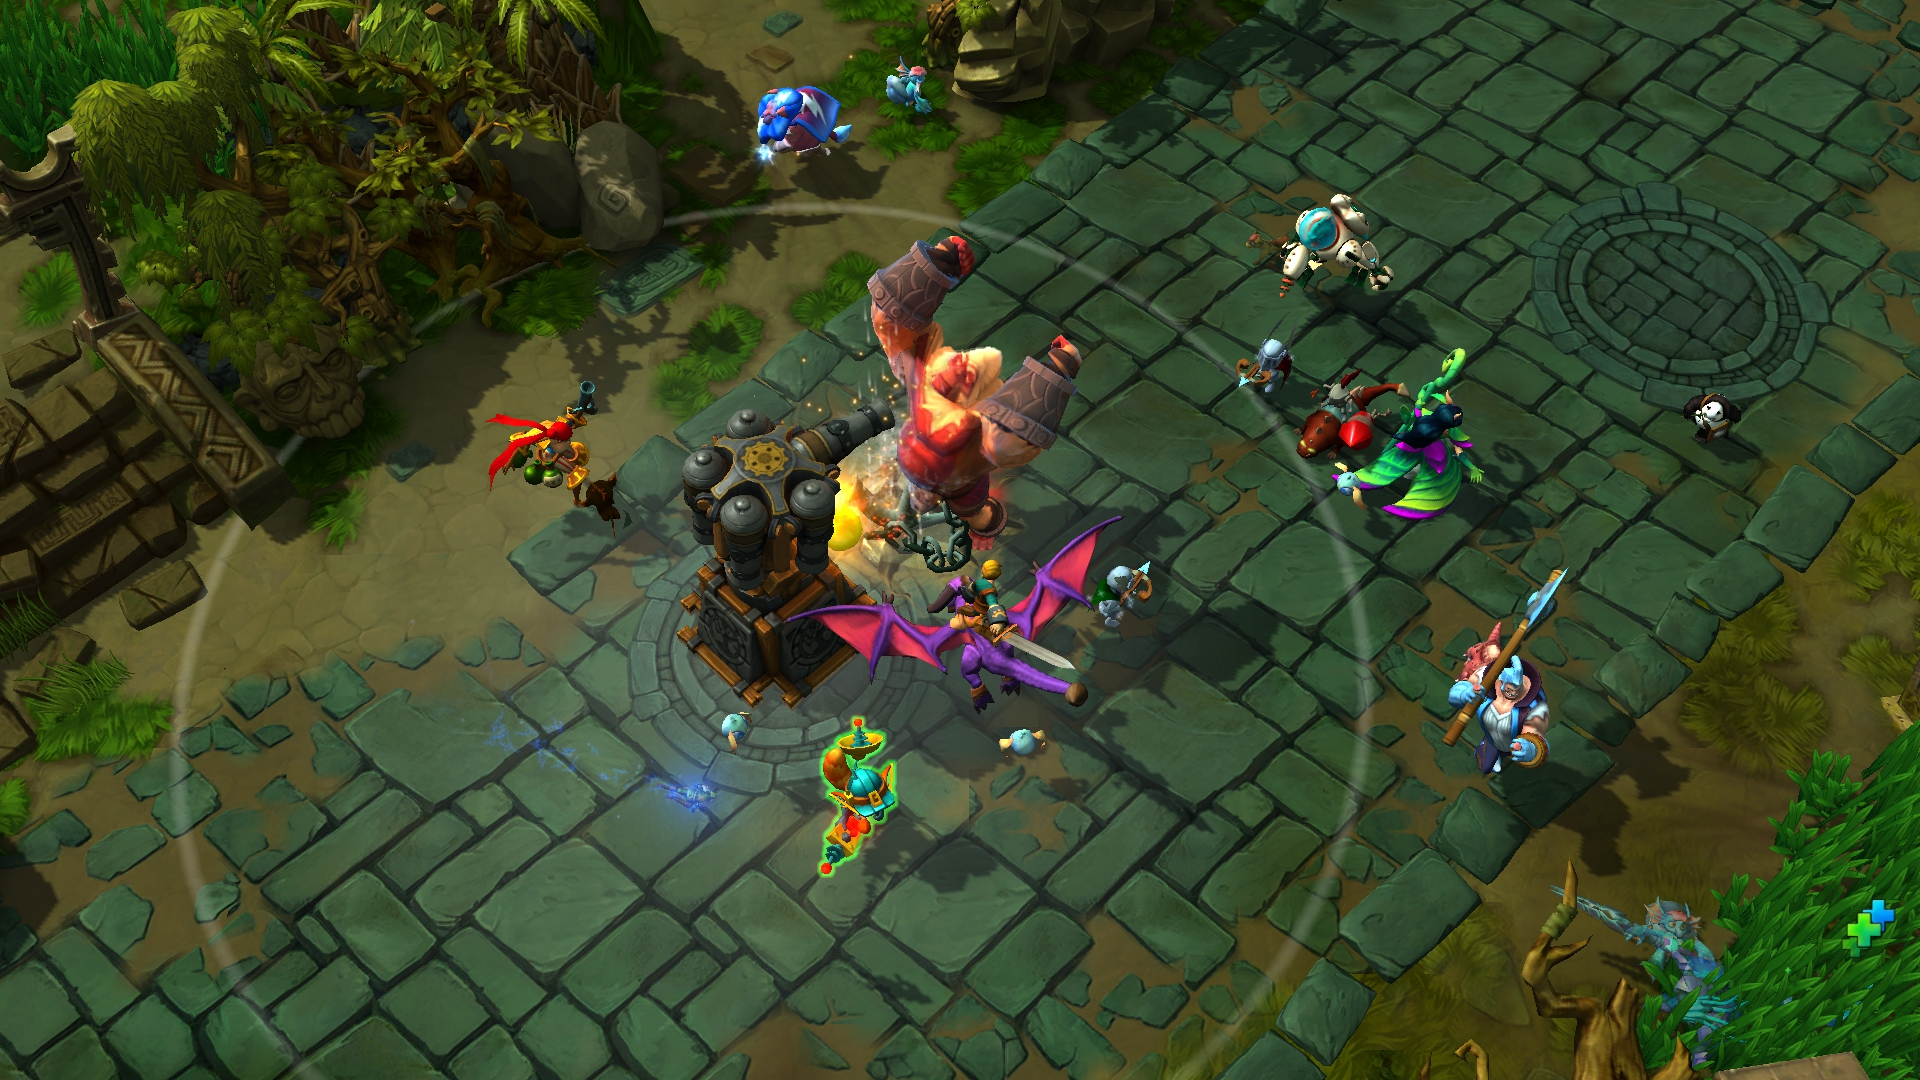 S2 Games Announces ?Strife?, A New MOBA for PC